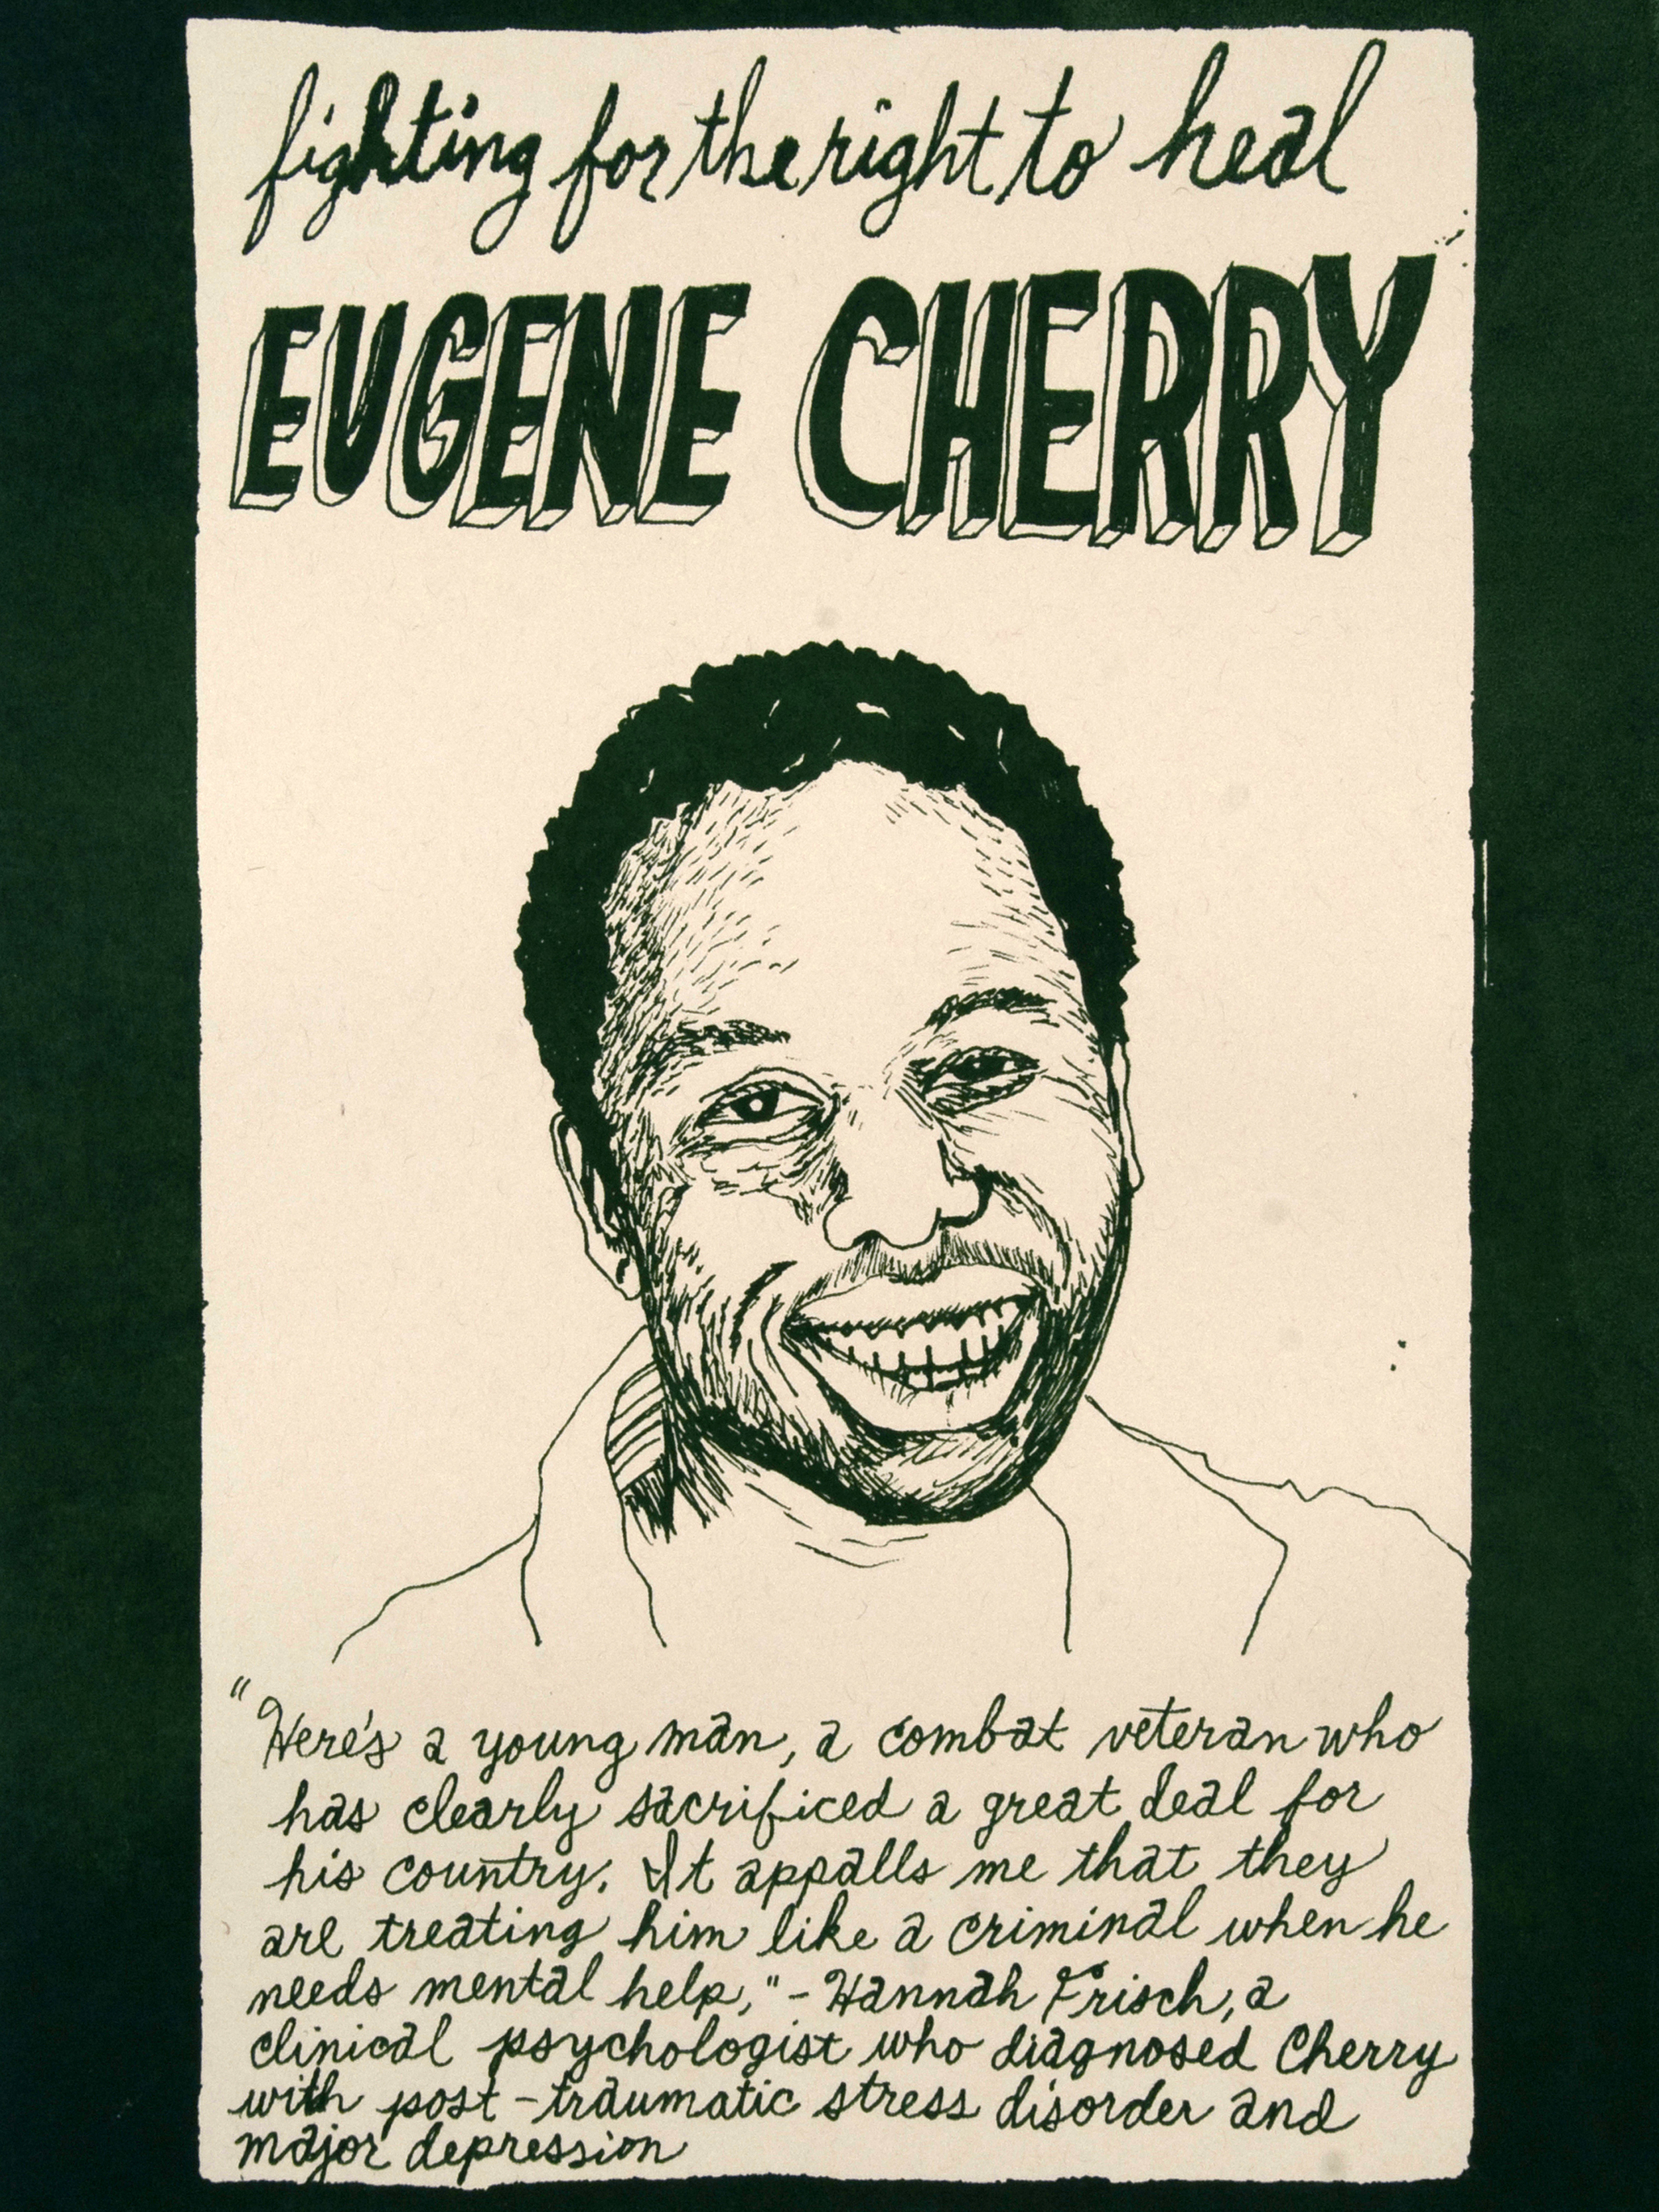 01 Eugene Cherry by Colin Matthes.jpg